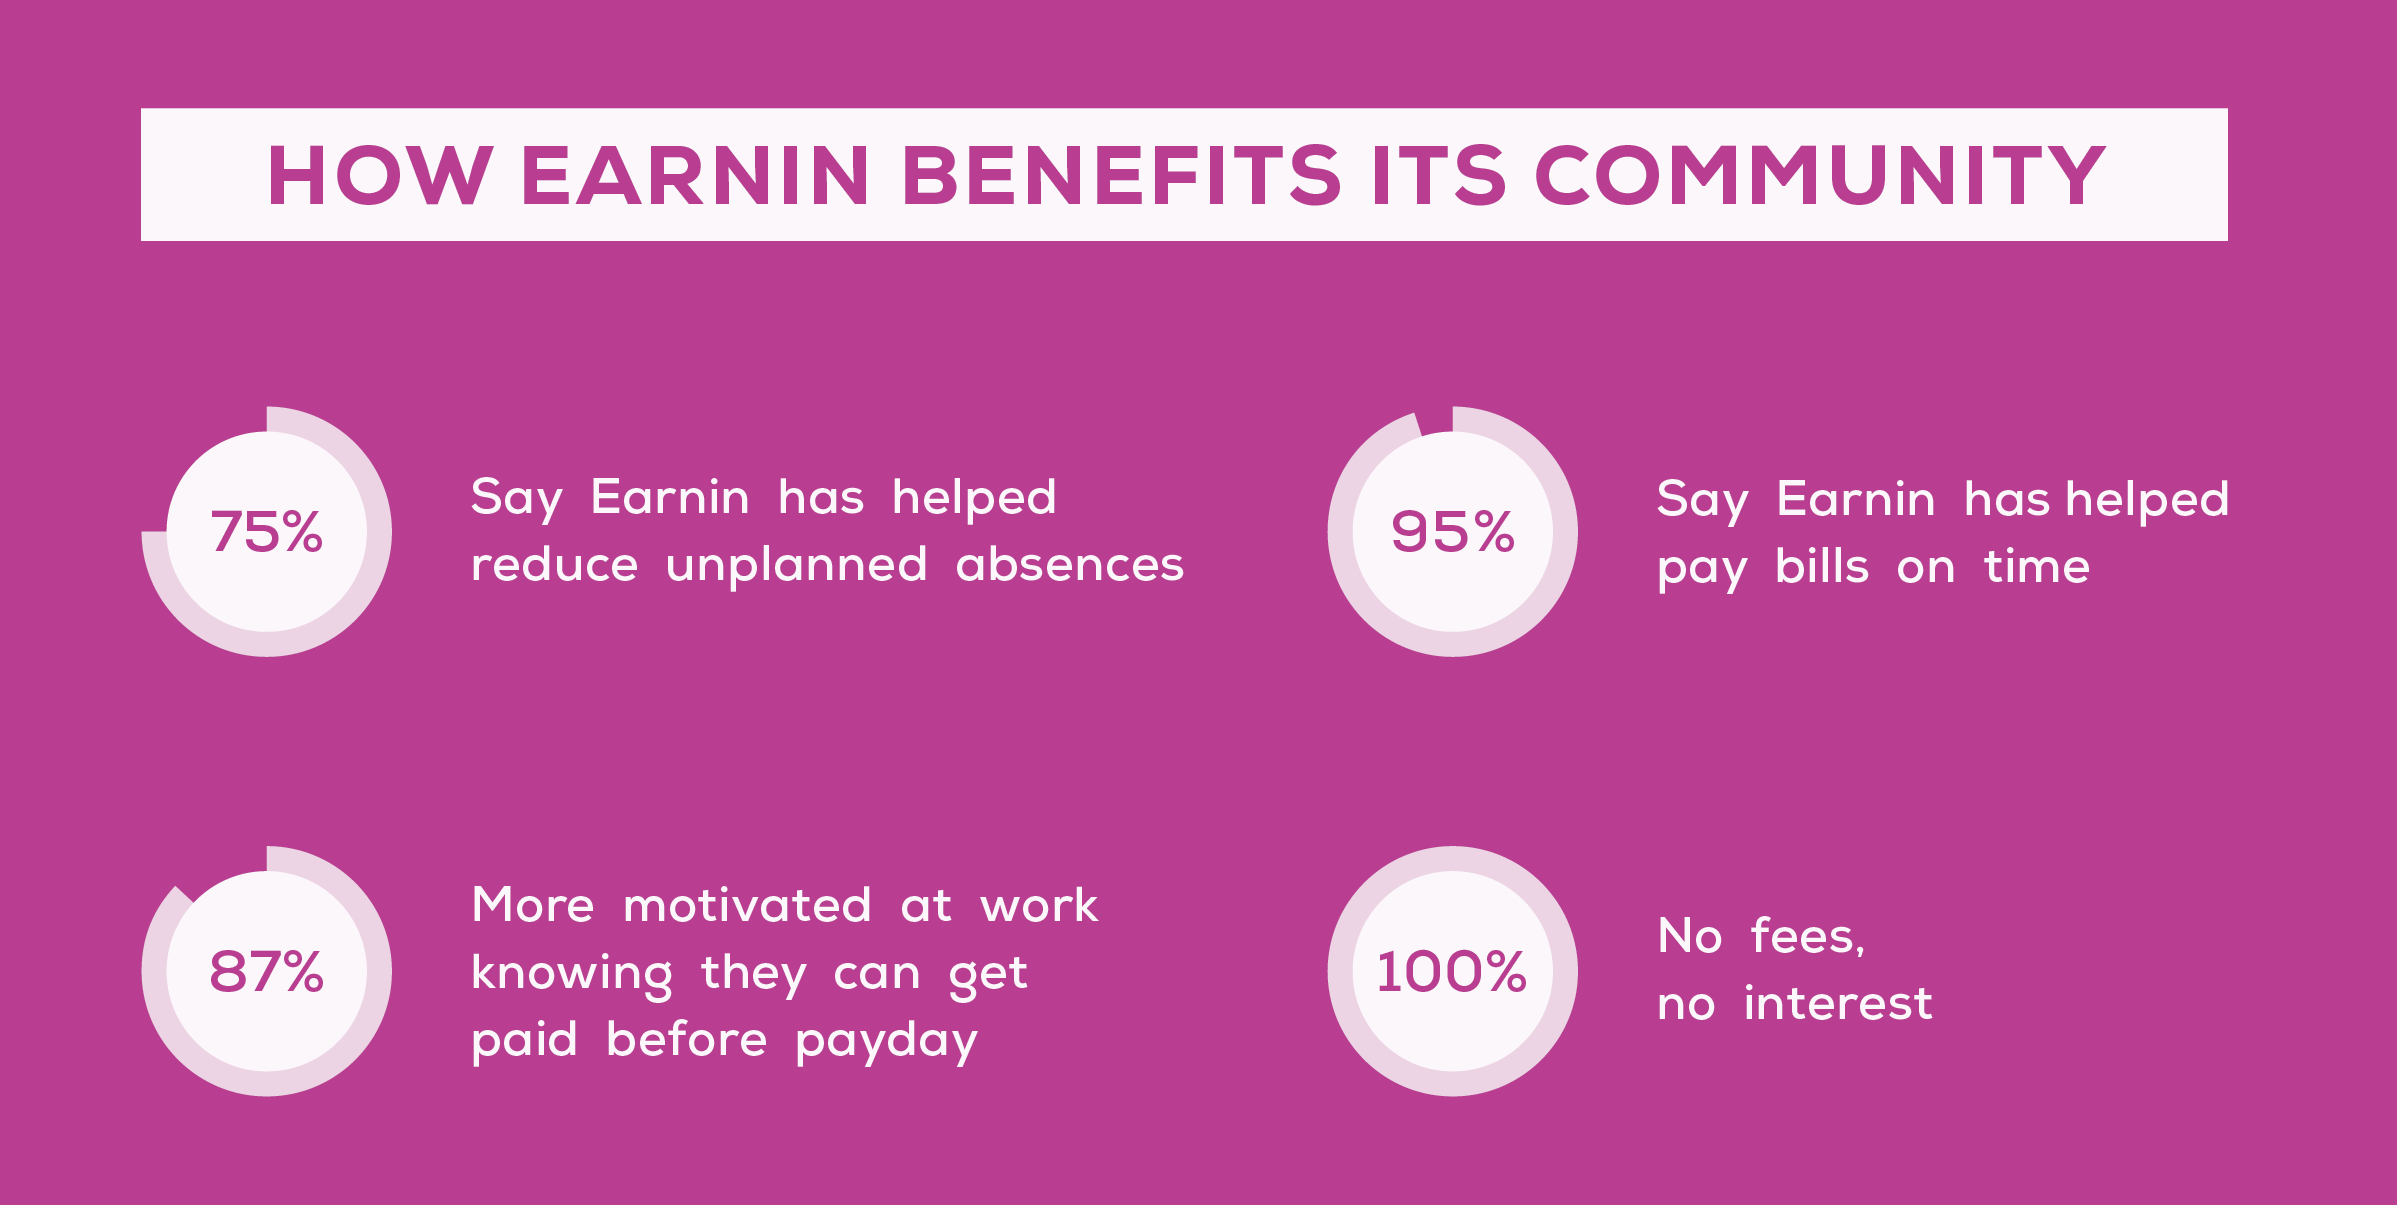 75% Say Earnin has helped reduce unplanned absences.  87% More motivated at work knowing they can get paid before payday.  95% Say Earnin has helped pay bills on time.  100% No fees, no interest.